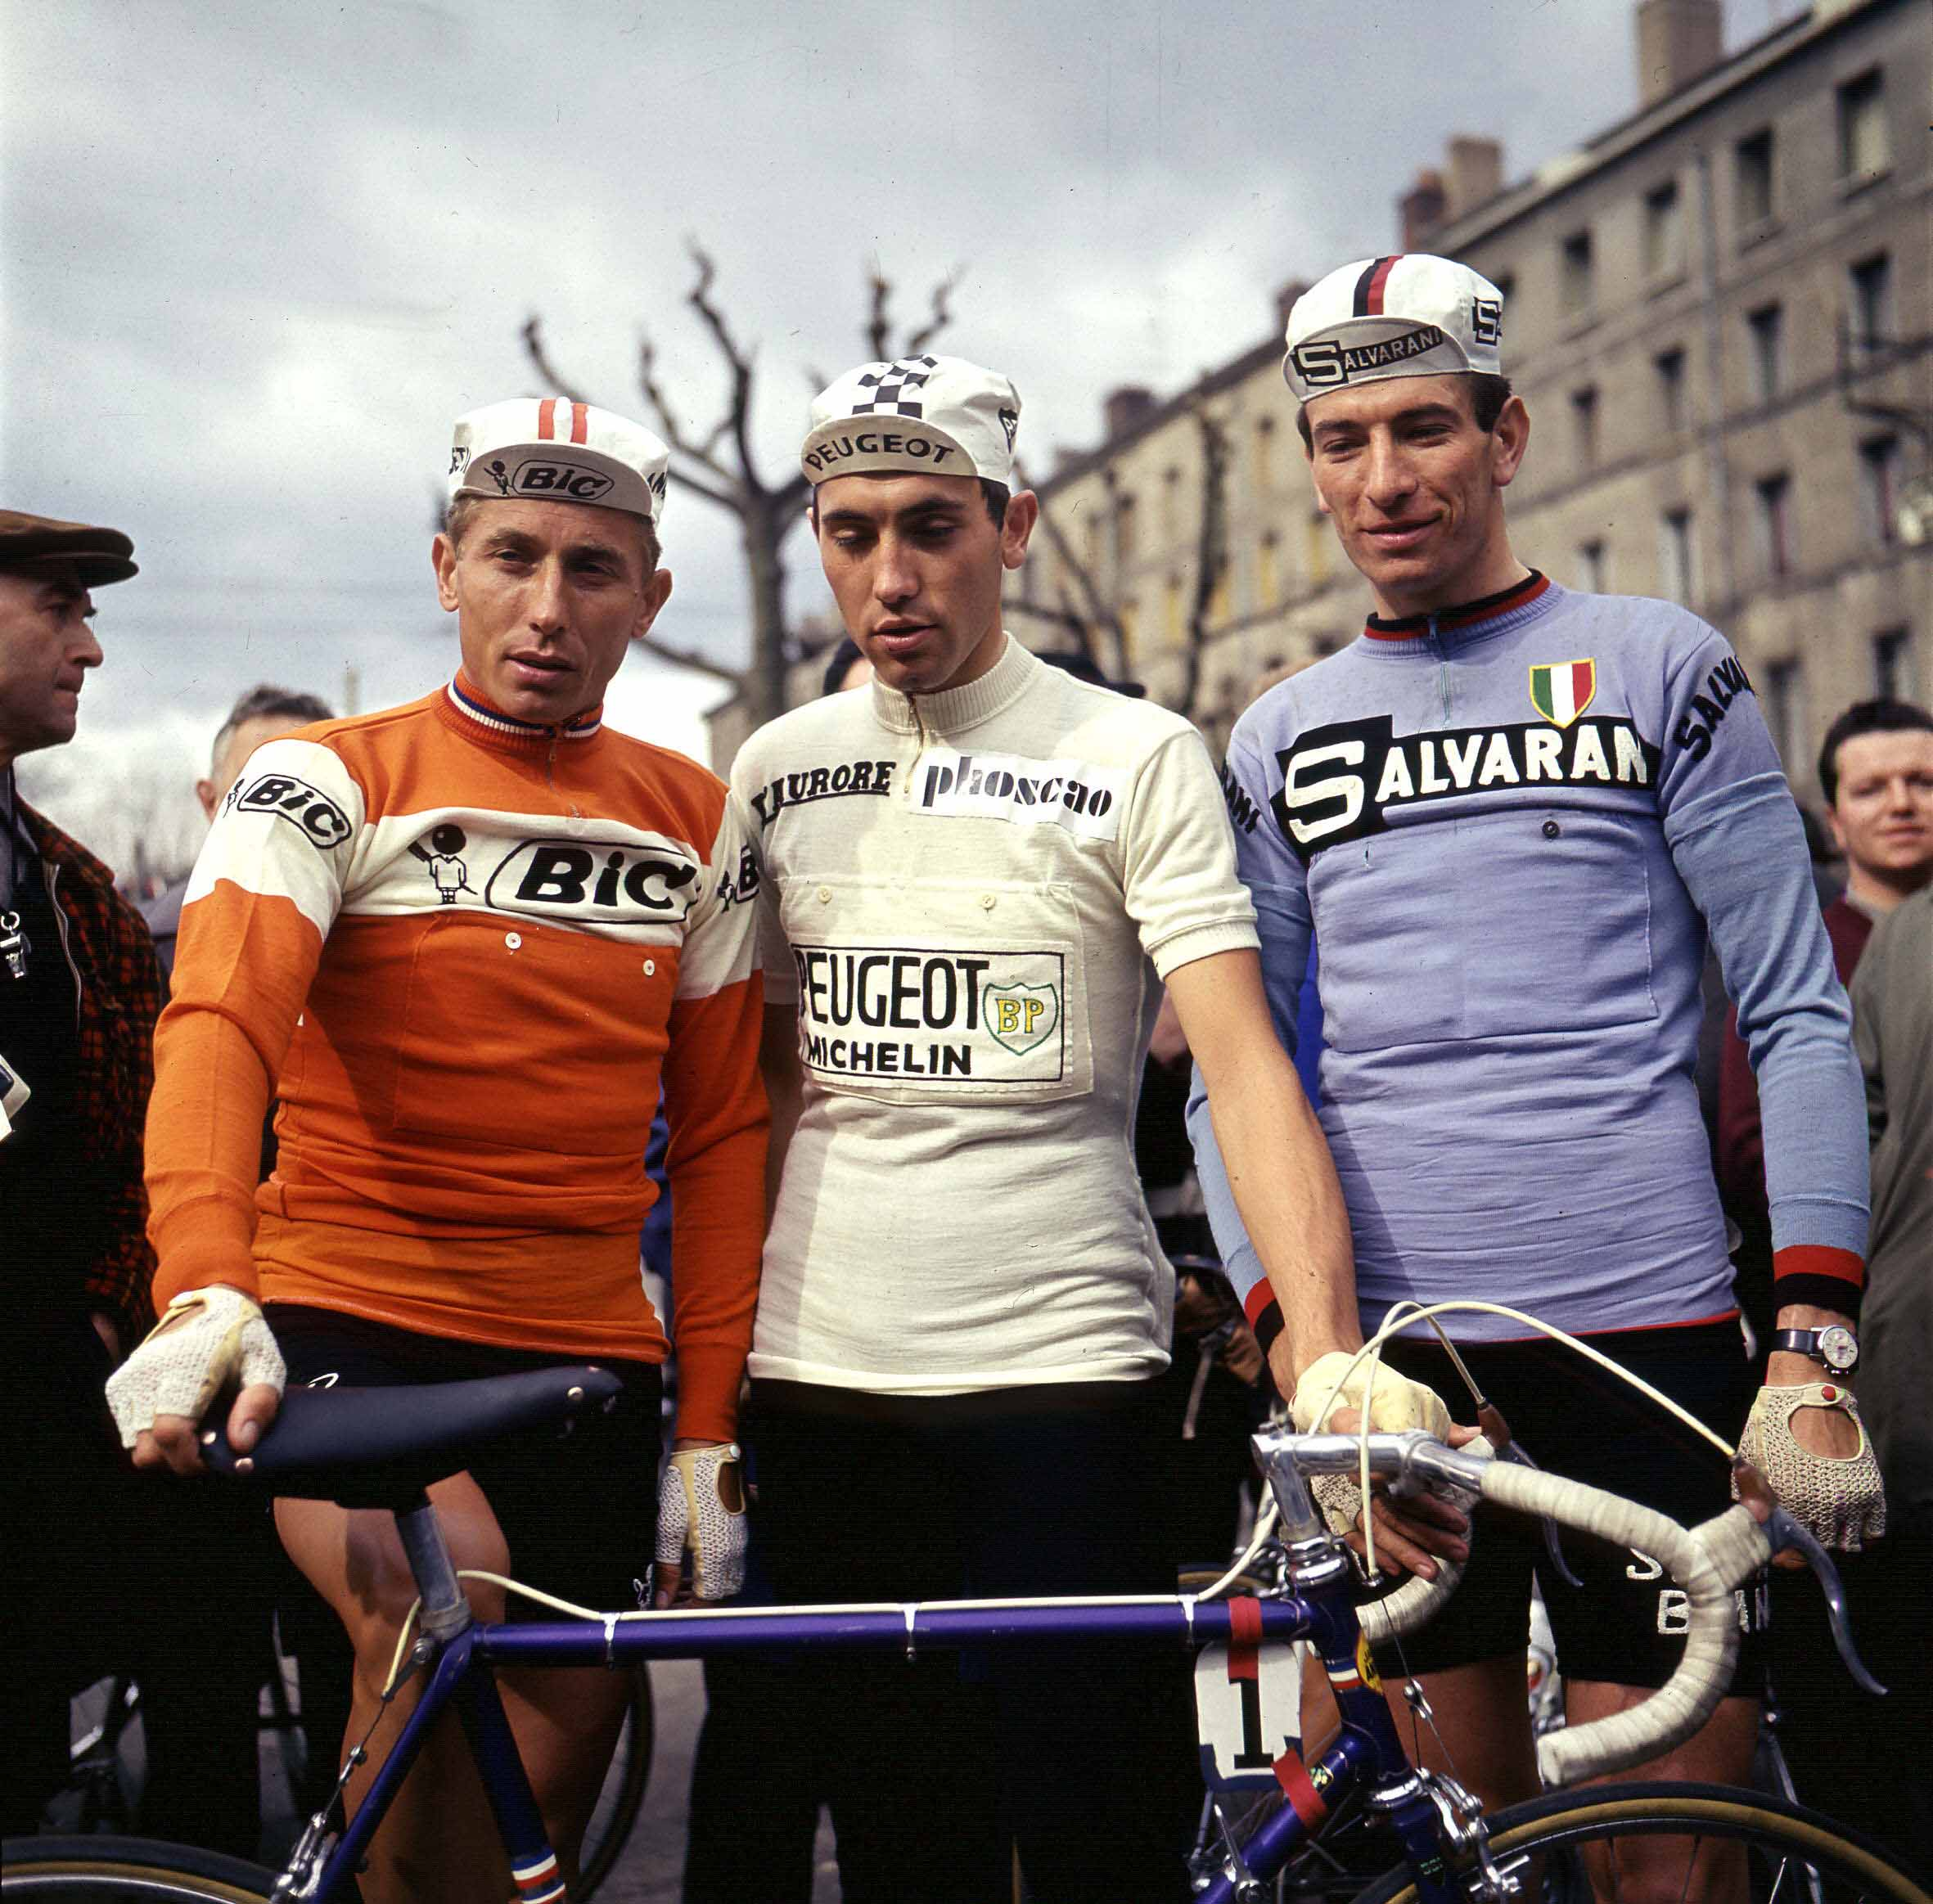 Cyclists Jacques Anquetil, Eddy Merckx and Felice Gimondi were the three winners of the Tour de France in 1970.